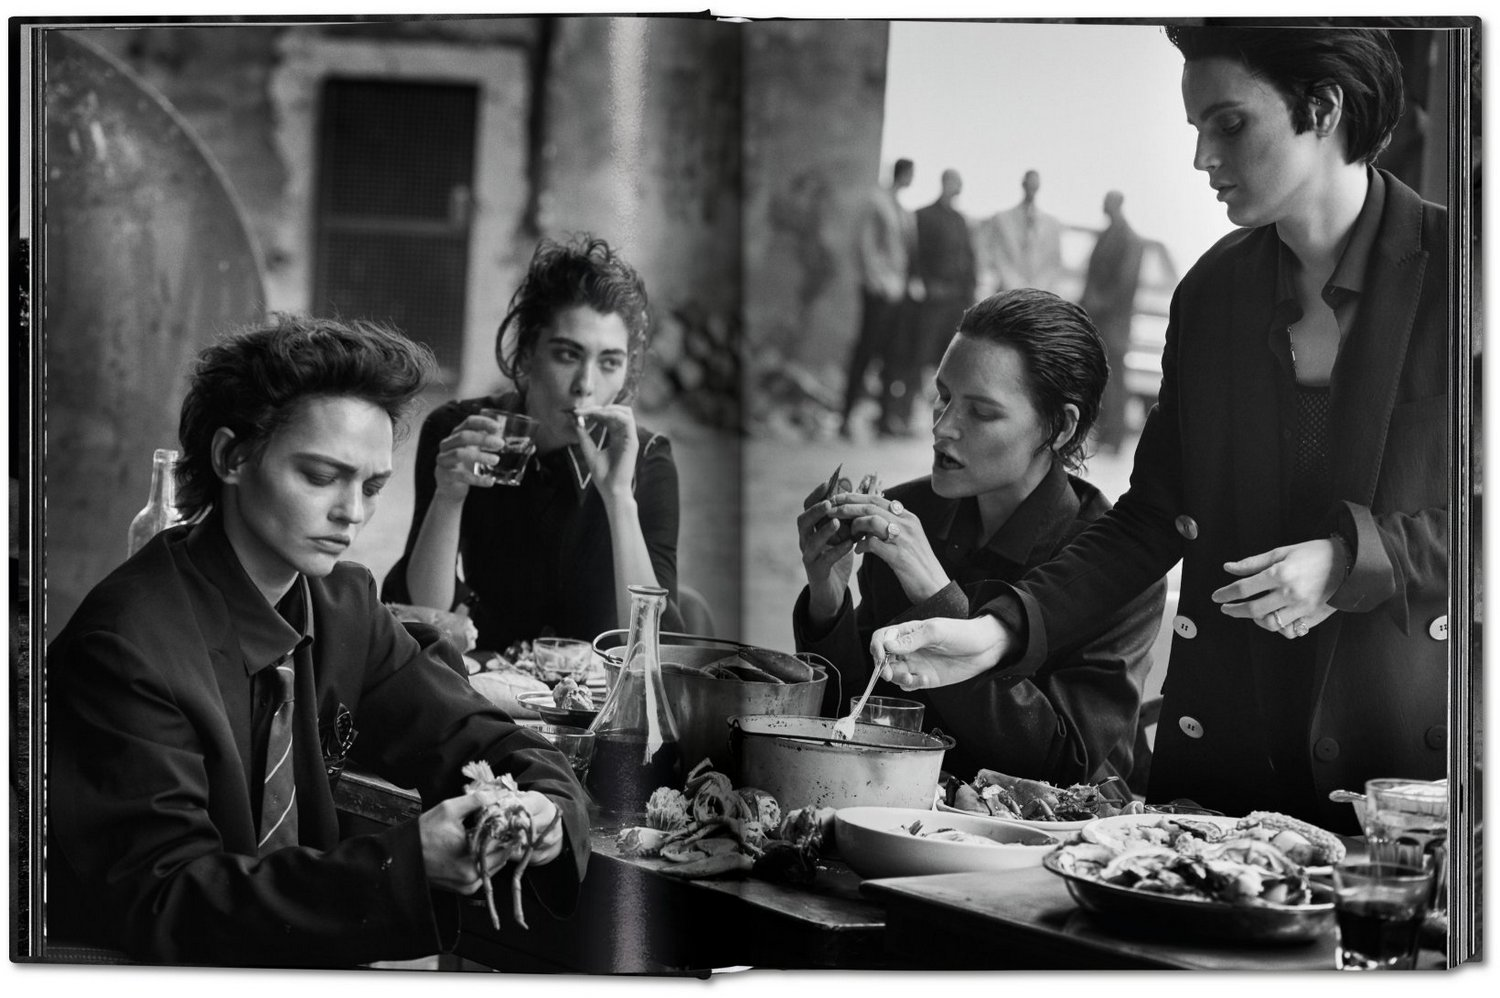 Peter Lindbergh: Untold Stories 1